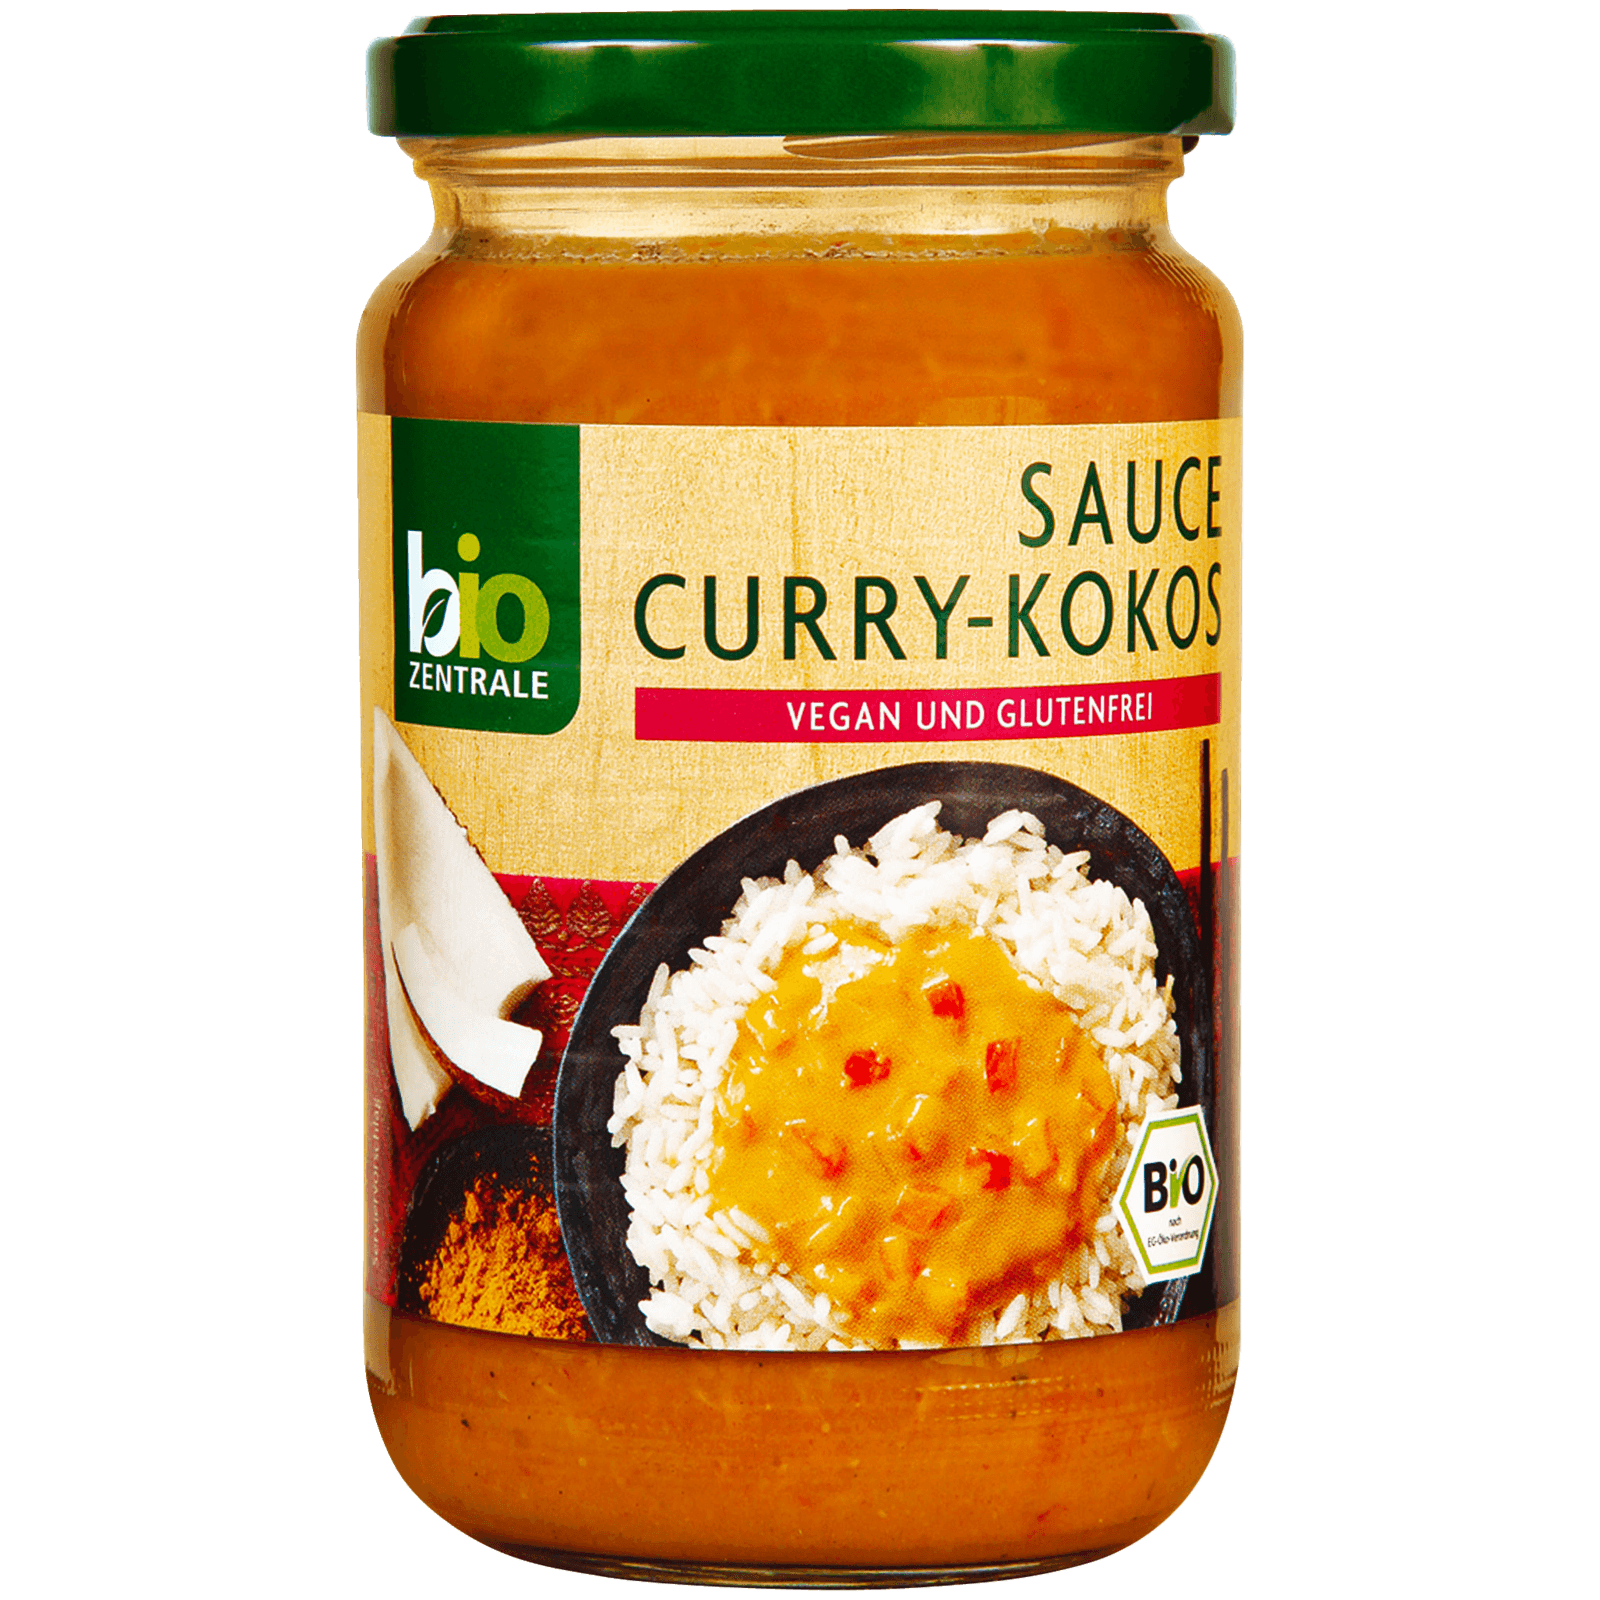 Bio Zentrale Sauce Curry-Kokos 340ml